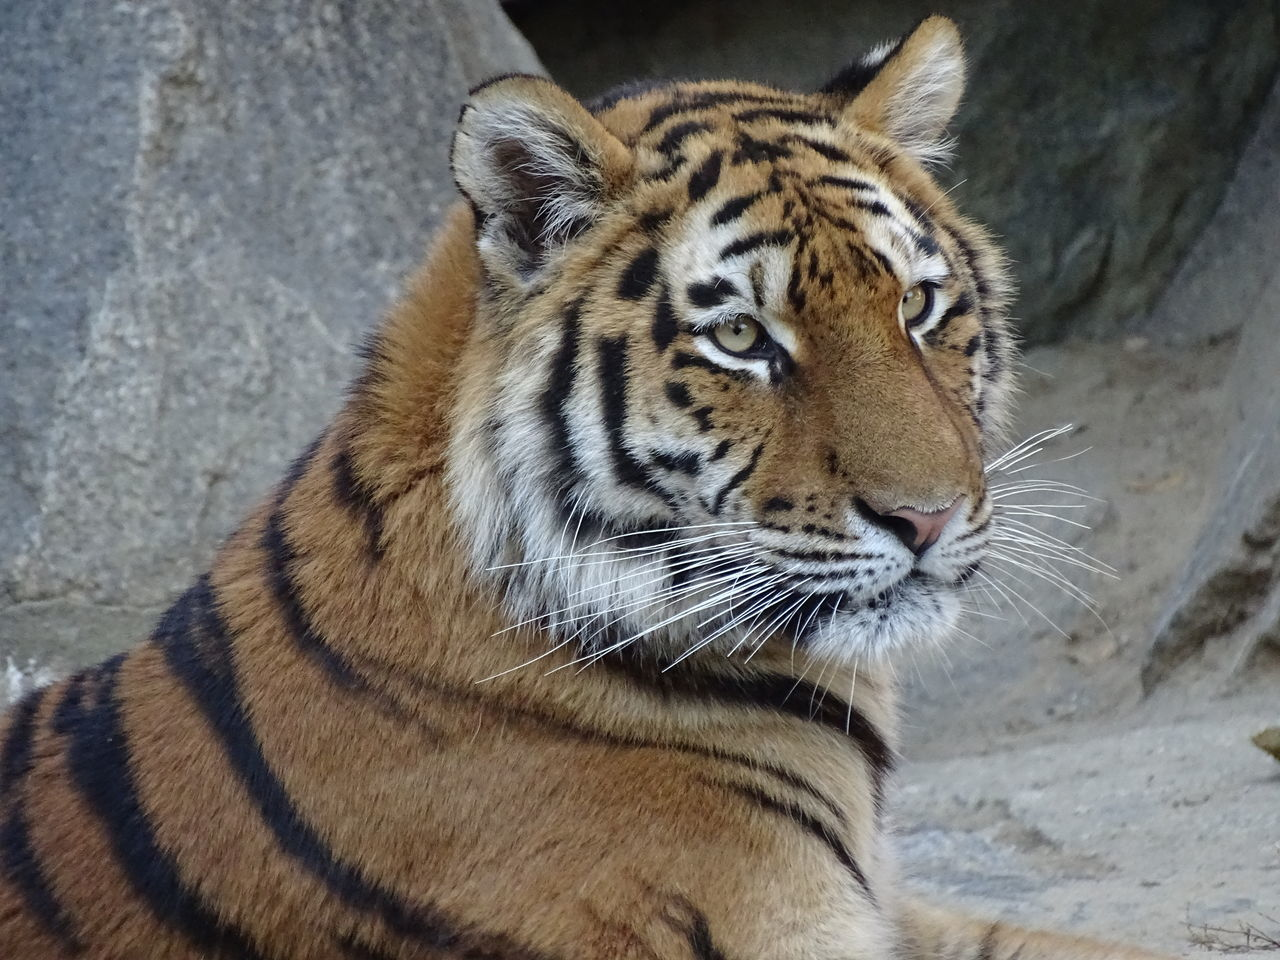 one animal, animals in the wild, animal wildlife, animal themes, tiger, no people, day, outdoors, close-up, nature, mammal